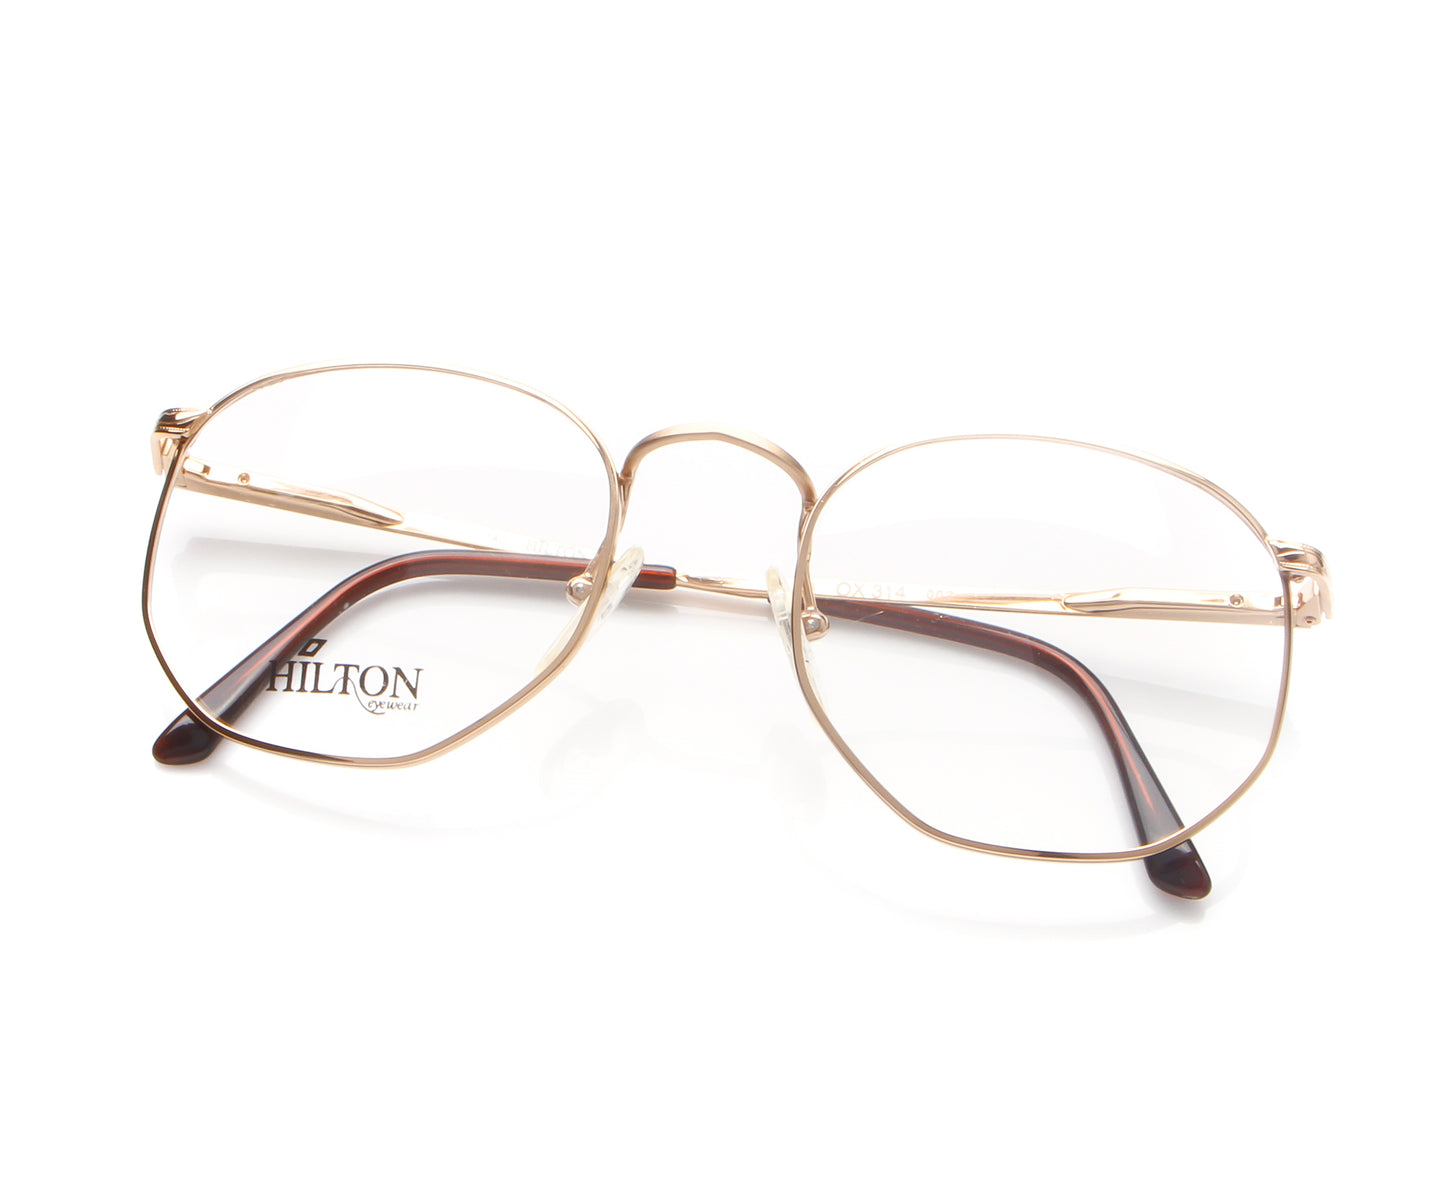 Vintage Hilton OX 314 002 Thumbnail, Hilton , glasses frames, eyeglasses online, eyeglass frames, mens glasses, womens glasses, buy glasses online, designer eyeglasses, vintage sunglasses, retro sunglasses, vintage glasses, sunglass, eyeglass, glasses, lens, vintage frames company, vf